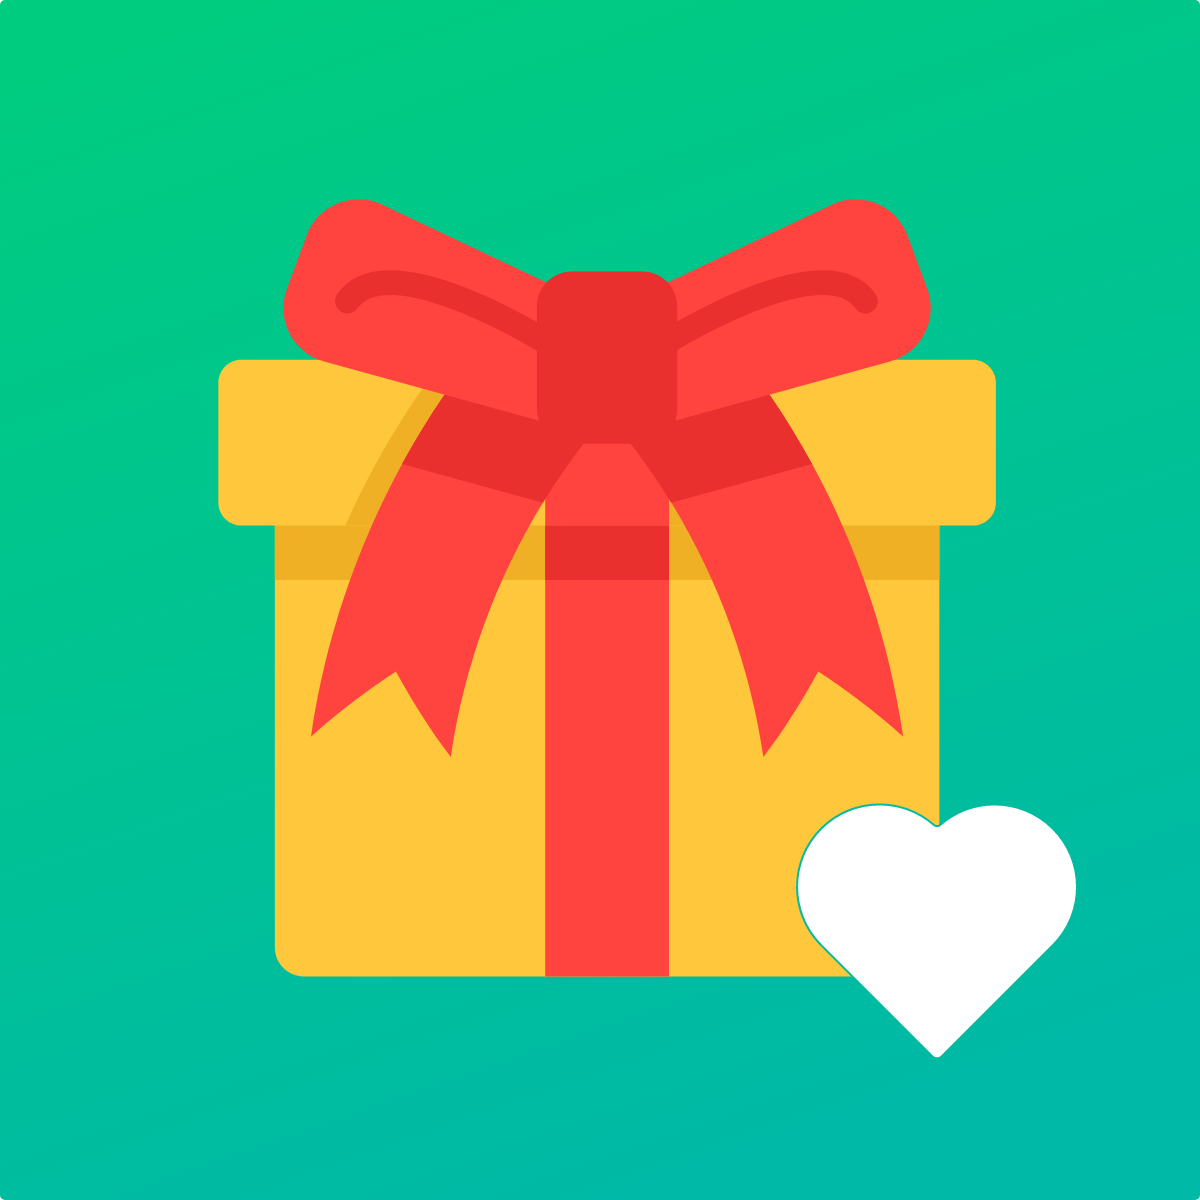 Hire Shopify Experts to integrate Gift Registry ‑ Share Registry app into a Shopify store